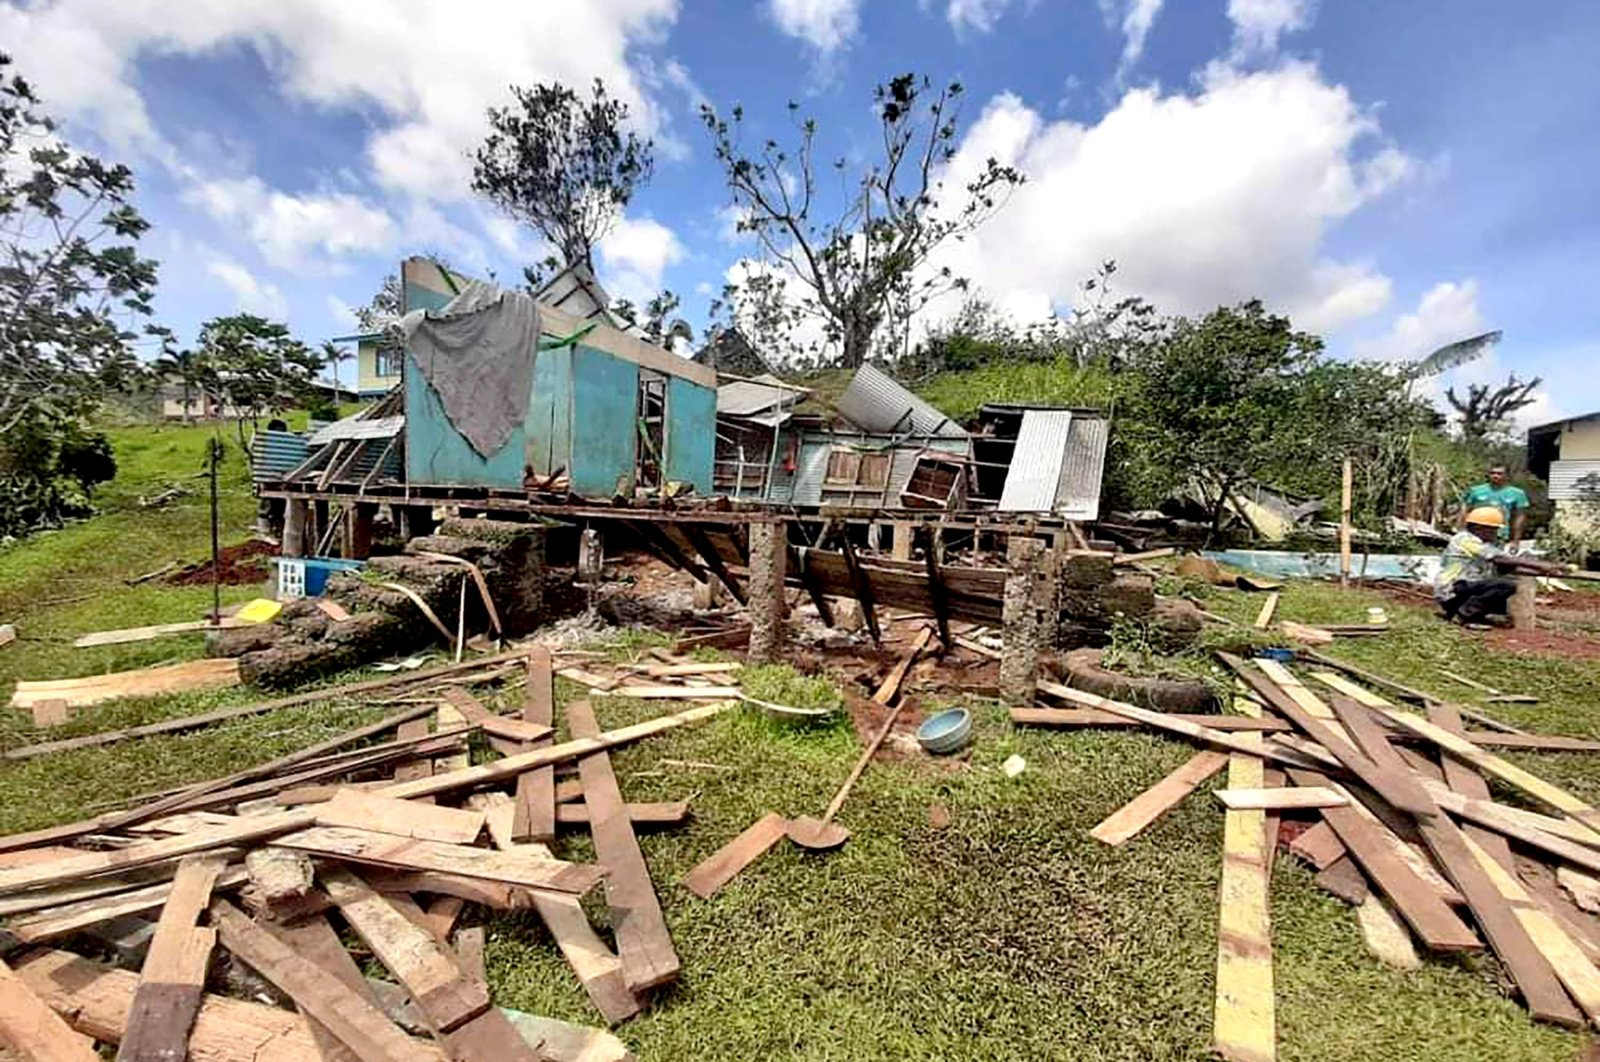 Debris from houses destroyed by Cyclone Yasa lay on the ground, on Vanua Levu Island, Fiji, Dec. 19, 2020. (Fiji Red Cross via AFP)